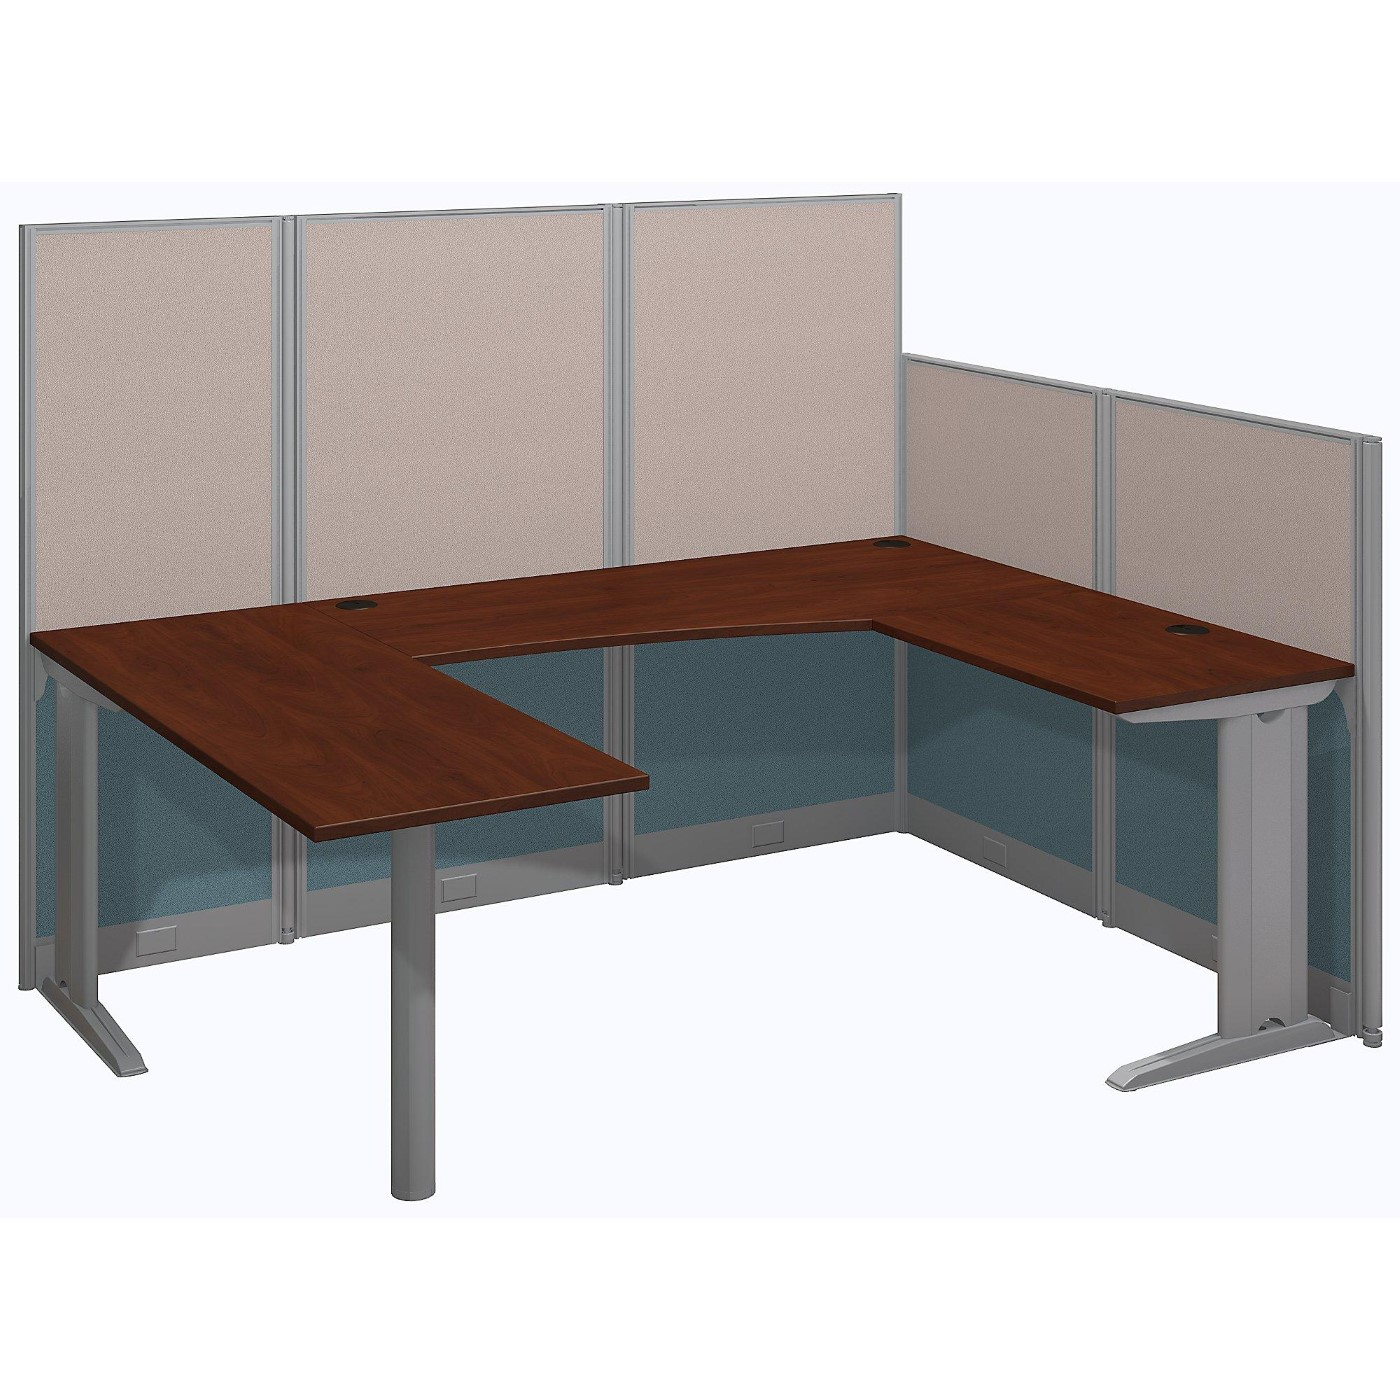 <font color=#c60><b>BUSH BUSINESS FURNITURE OFFICE IN AN HOUR 89W X 65D U SHAPED CUBICLE WORKSTATION. FREE SHIPPING</font></b></font></b>